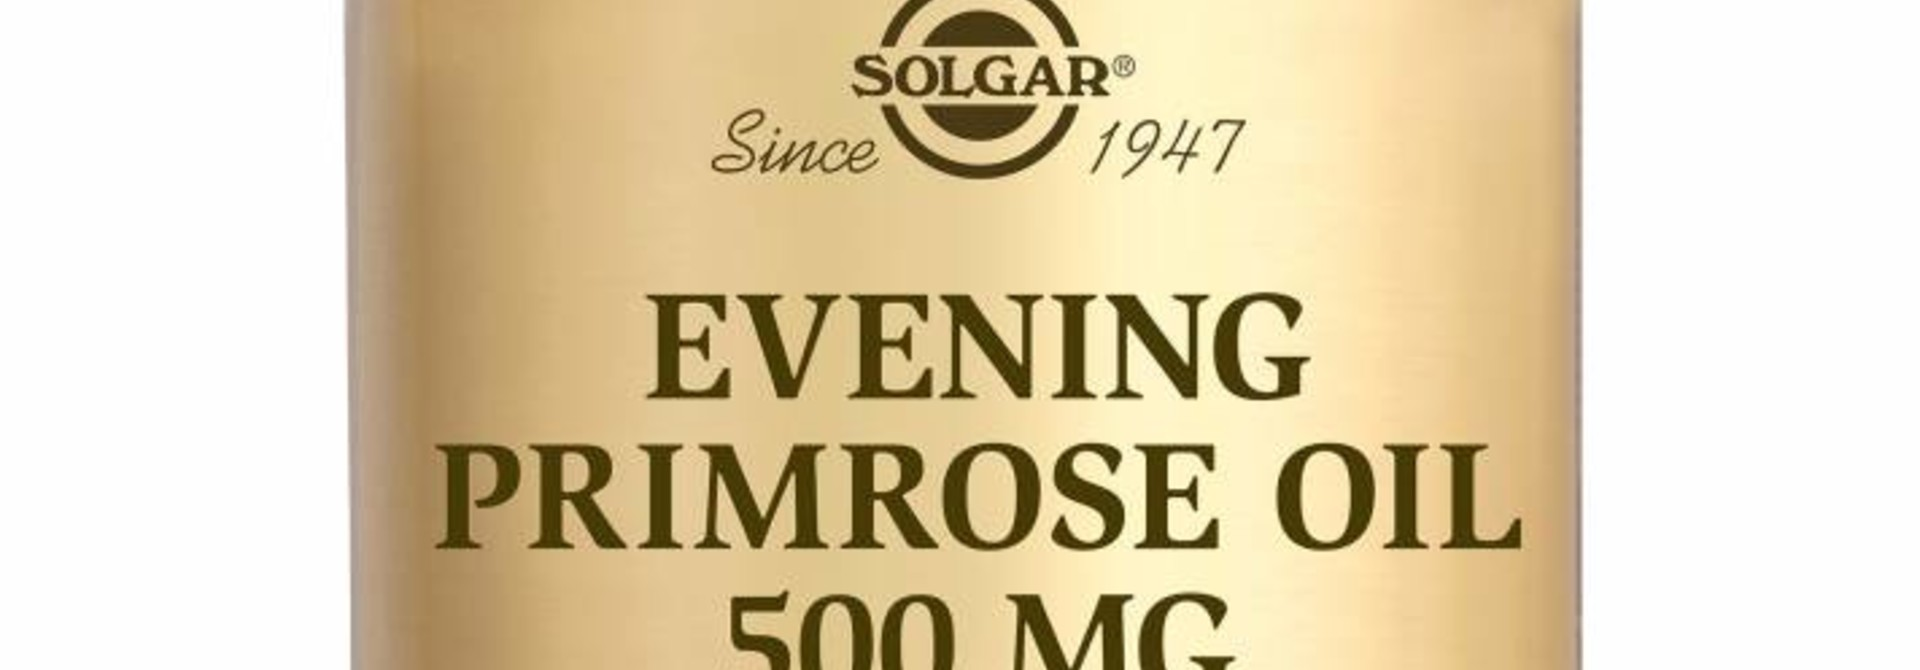 Evening Primrose Oil 500 mg 180 softgels